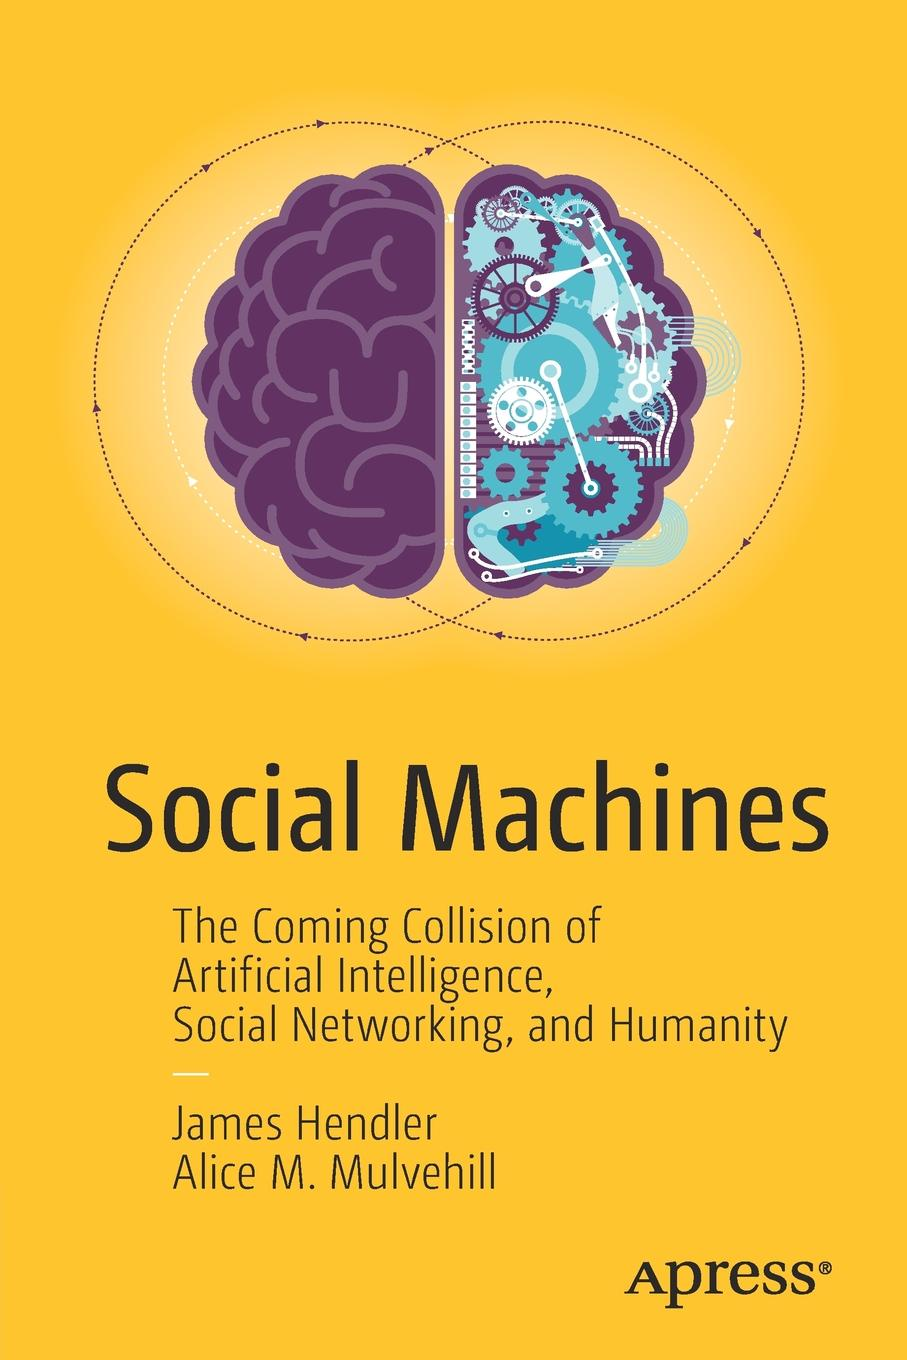 James Hendler, Alice Mulvehill Social Machines. The Coming Collision of Artificial Intelligence, Social Networking, and Humanity